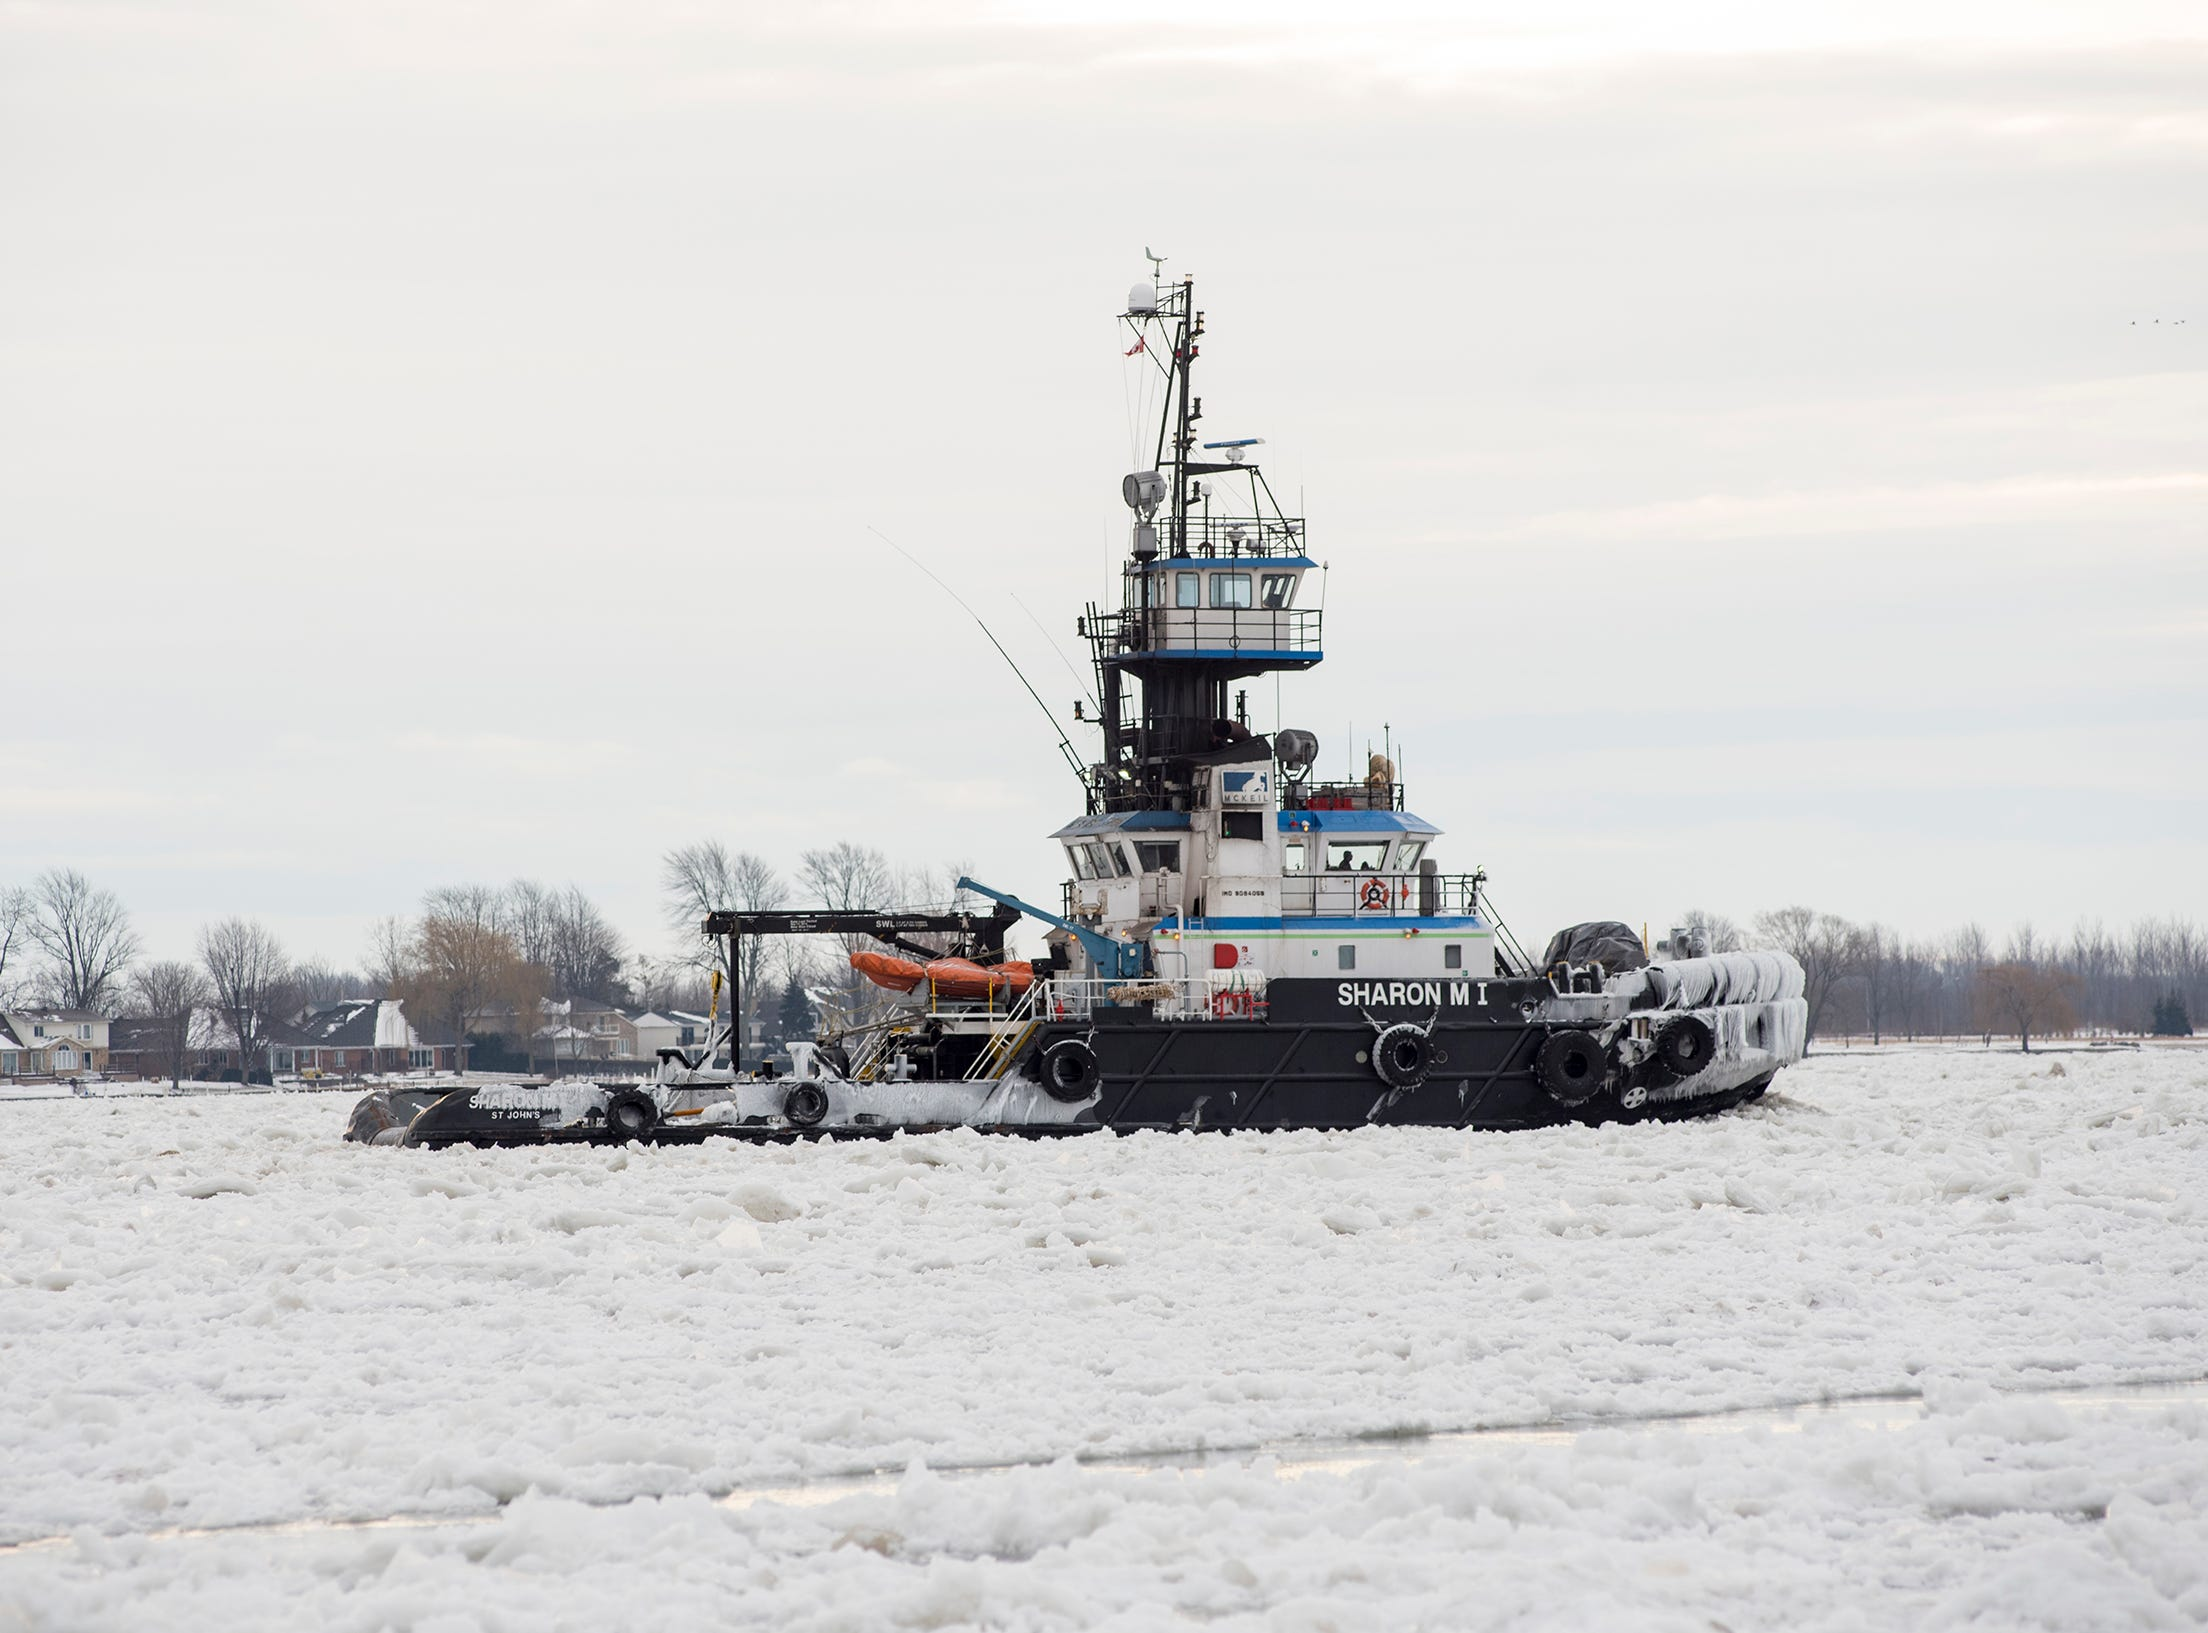 The Sharon M I tug is seen downbound through ice on the St. Clair River north of Marine City Tuesday, Jan. 22, 2019.